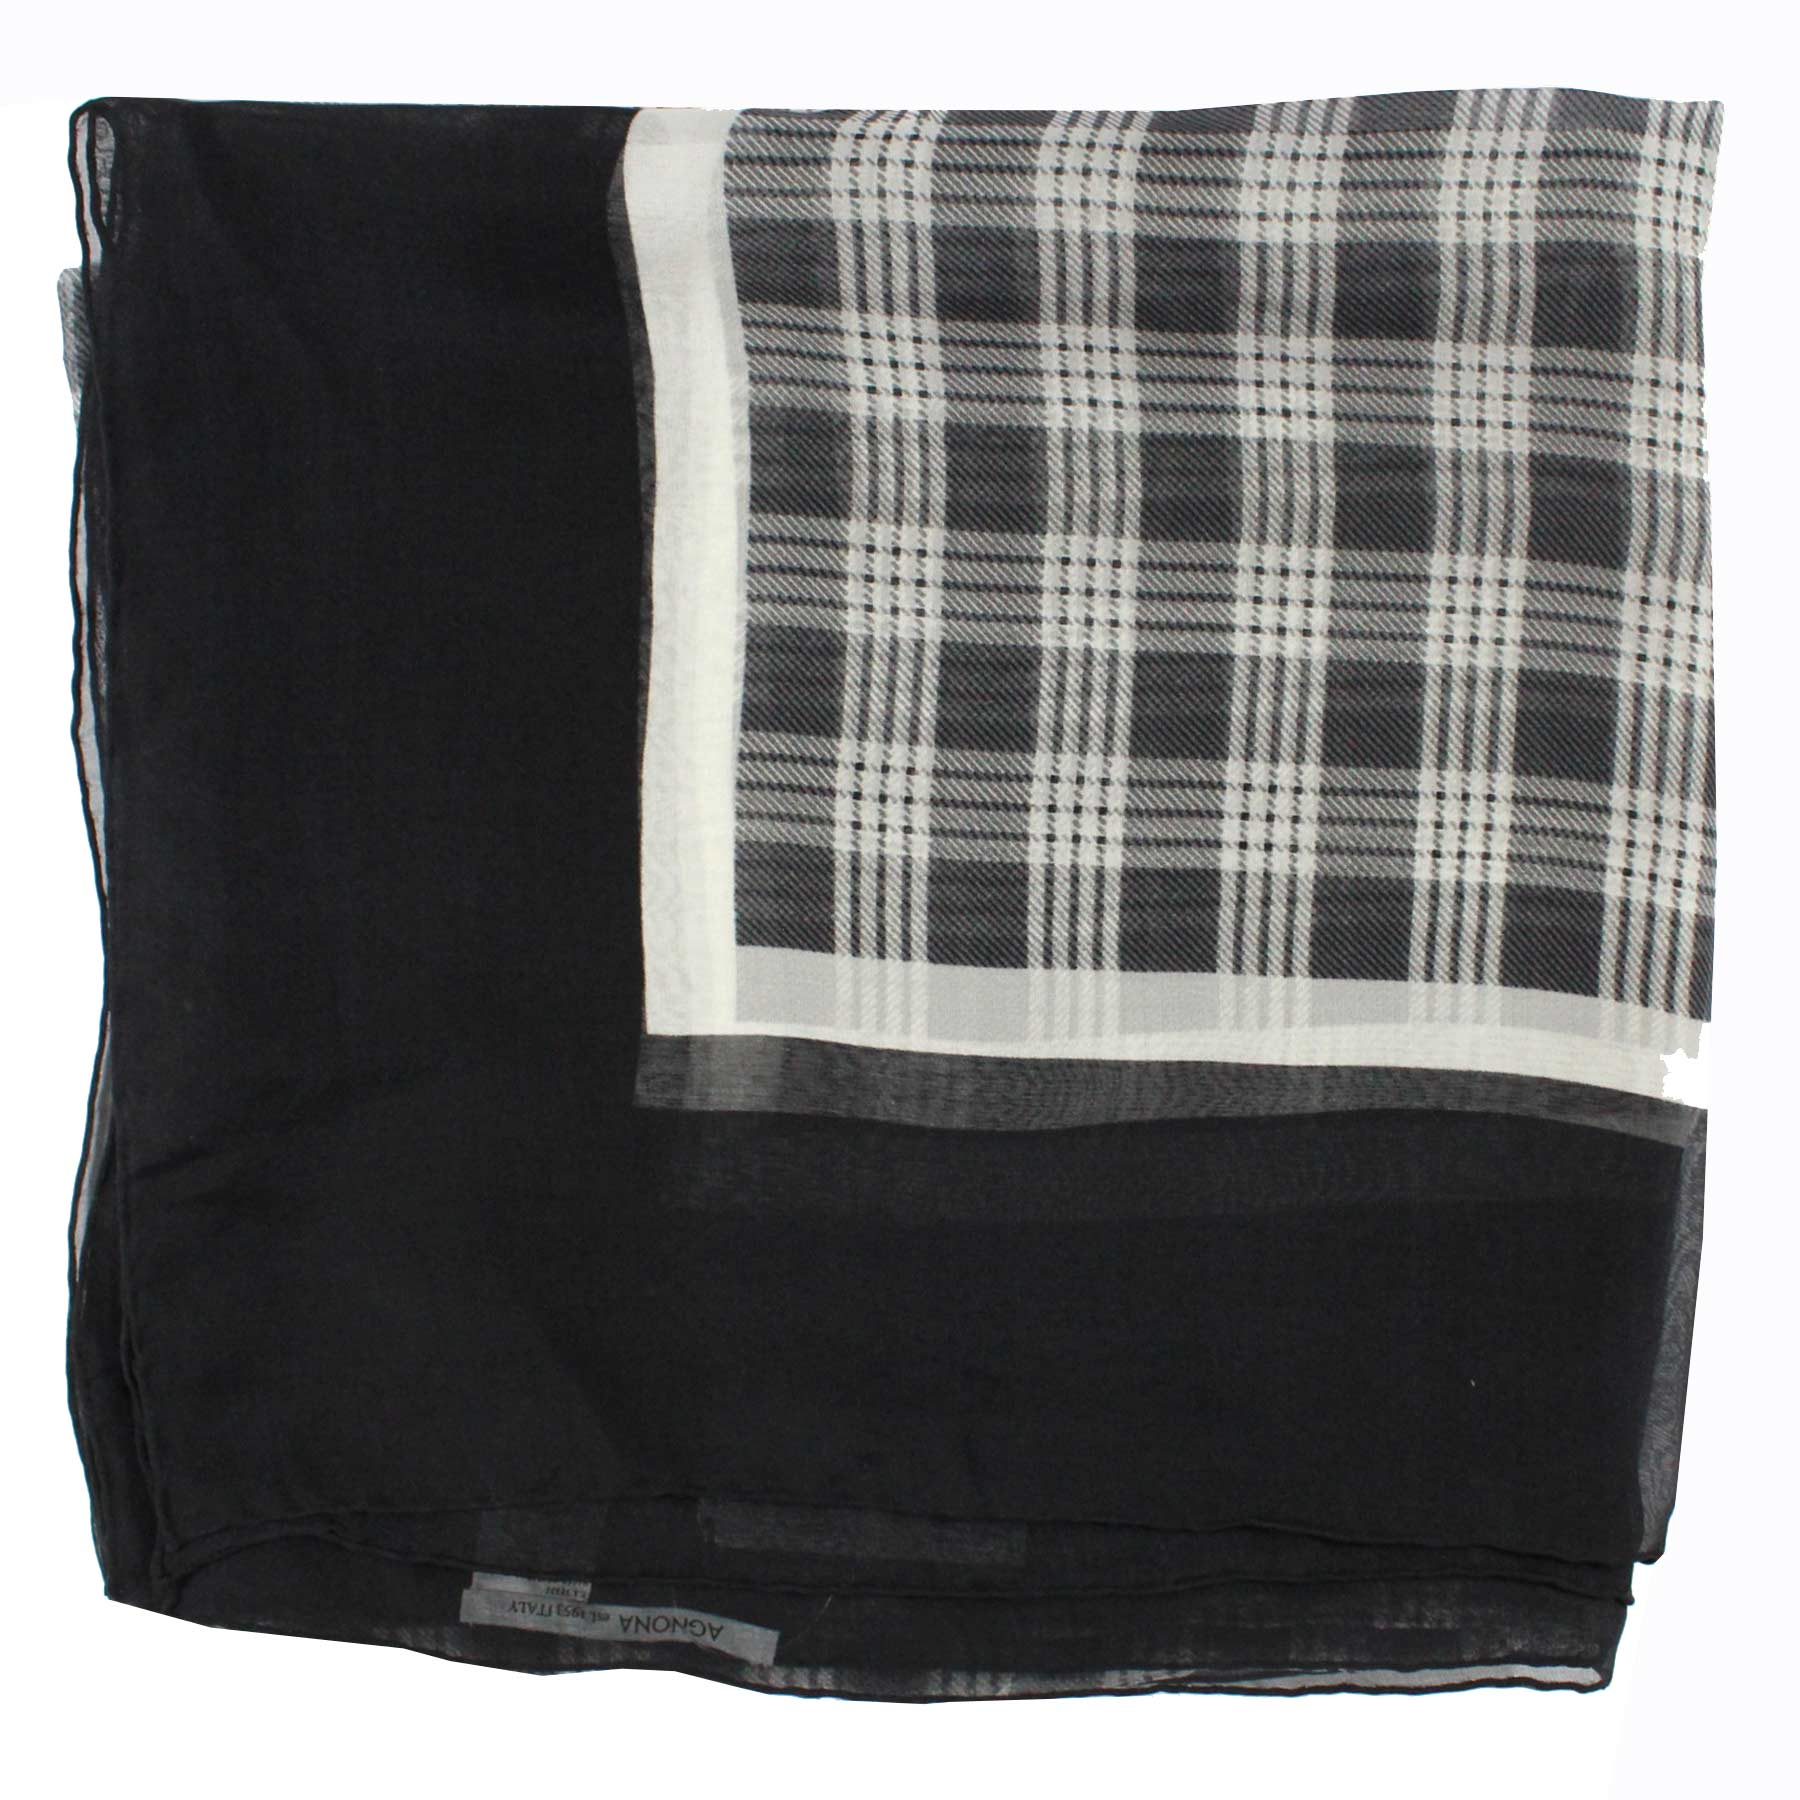 Agnona Scarf Black White Plaid Check Chiffon